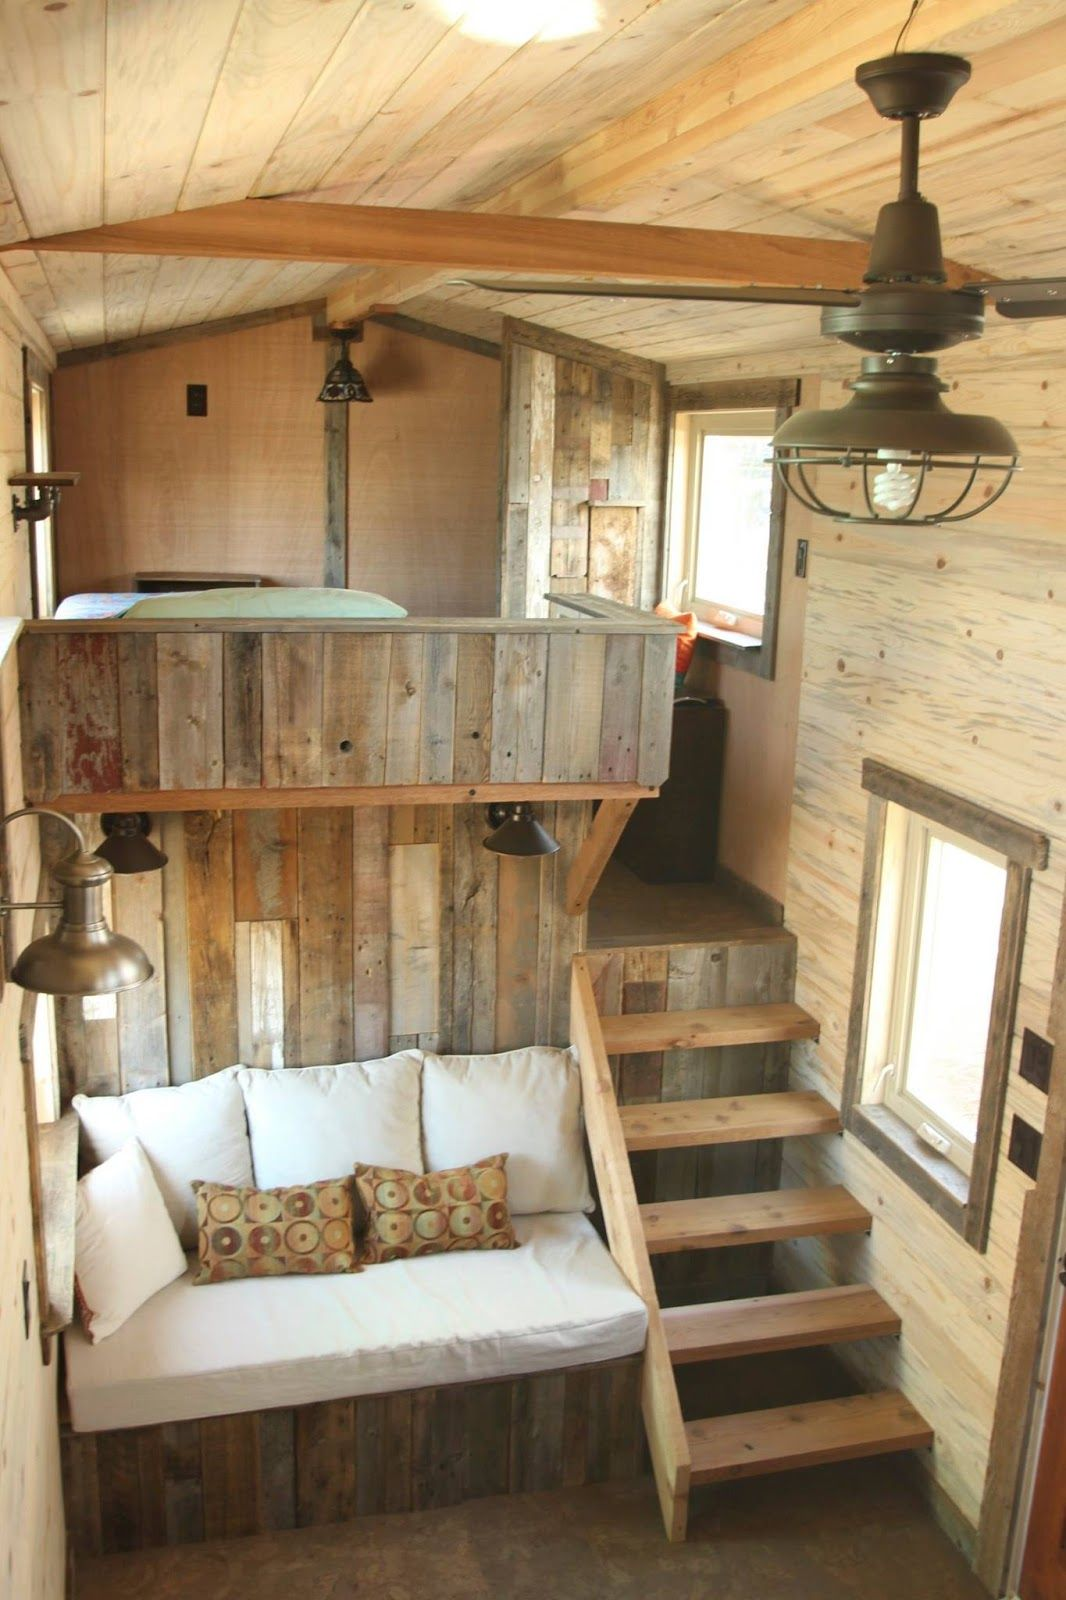 A Beautiful Custom Rustic Home From SimBLISSity Tiny Homes. Made From A  Pine And Corrugated Metal Exterior With A Warm, Cabin Like Interior.